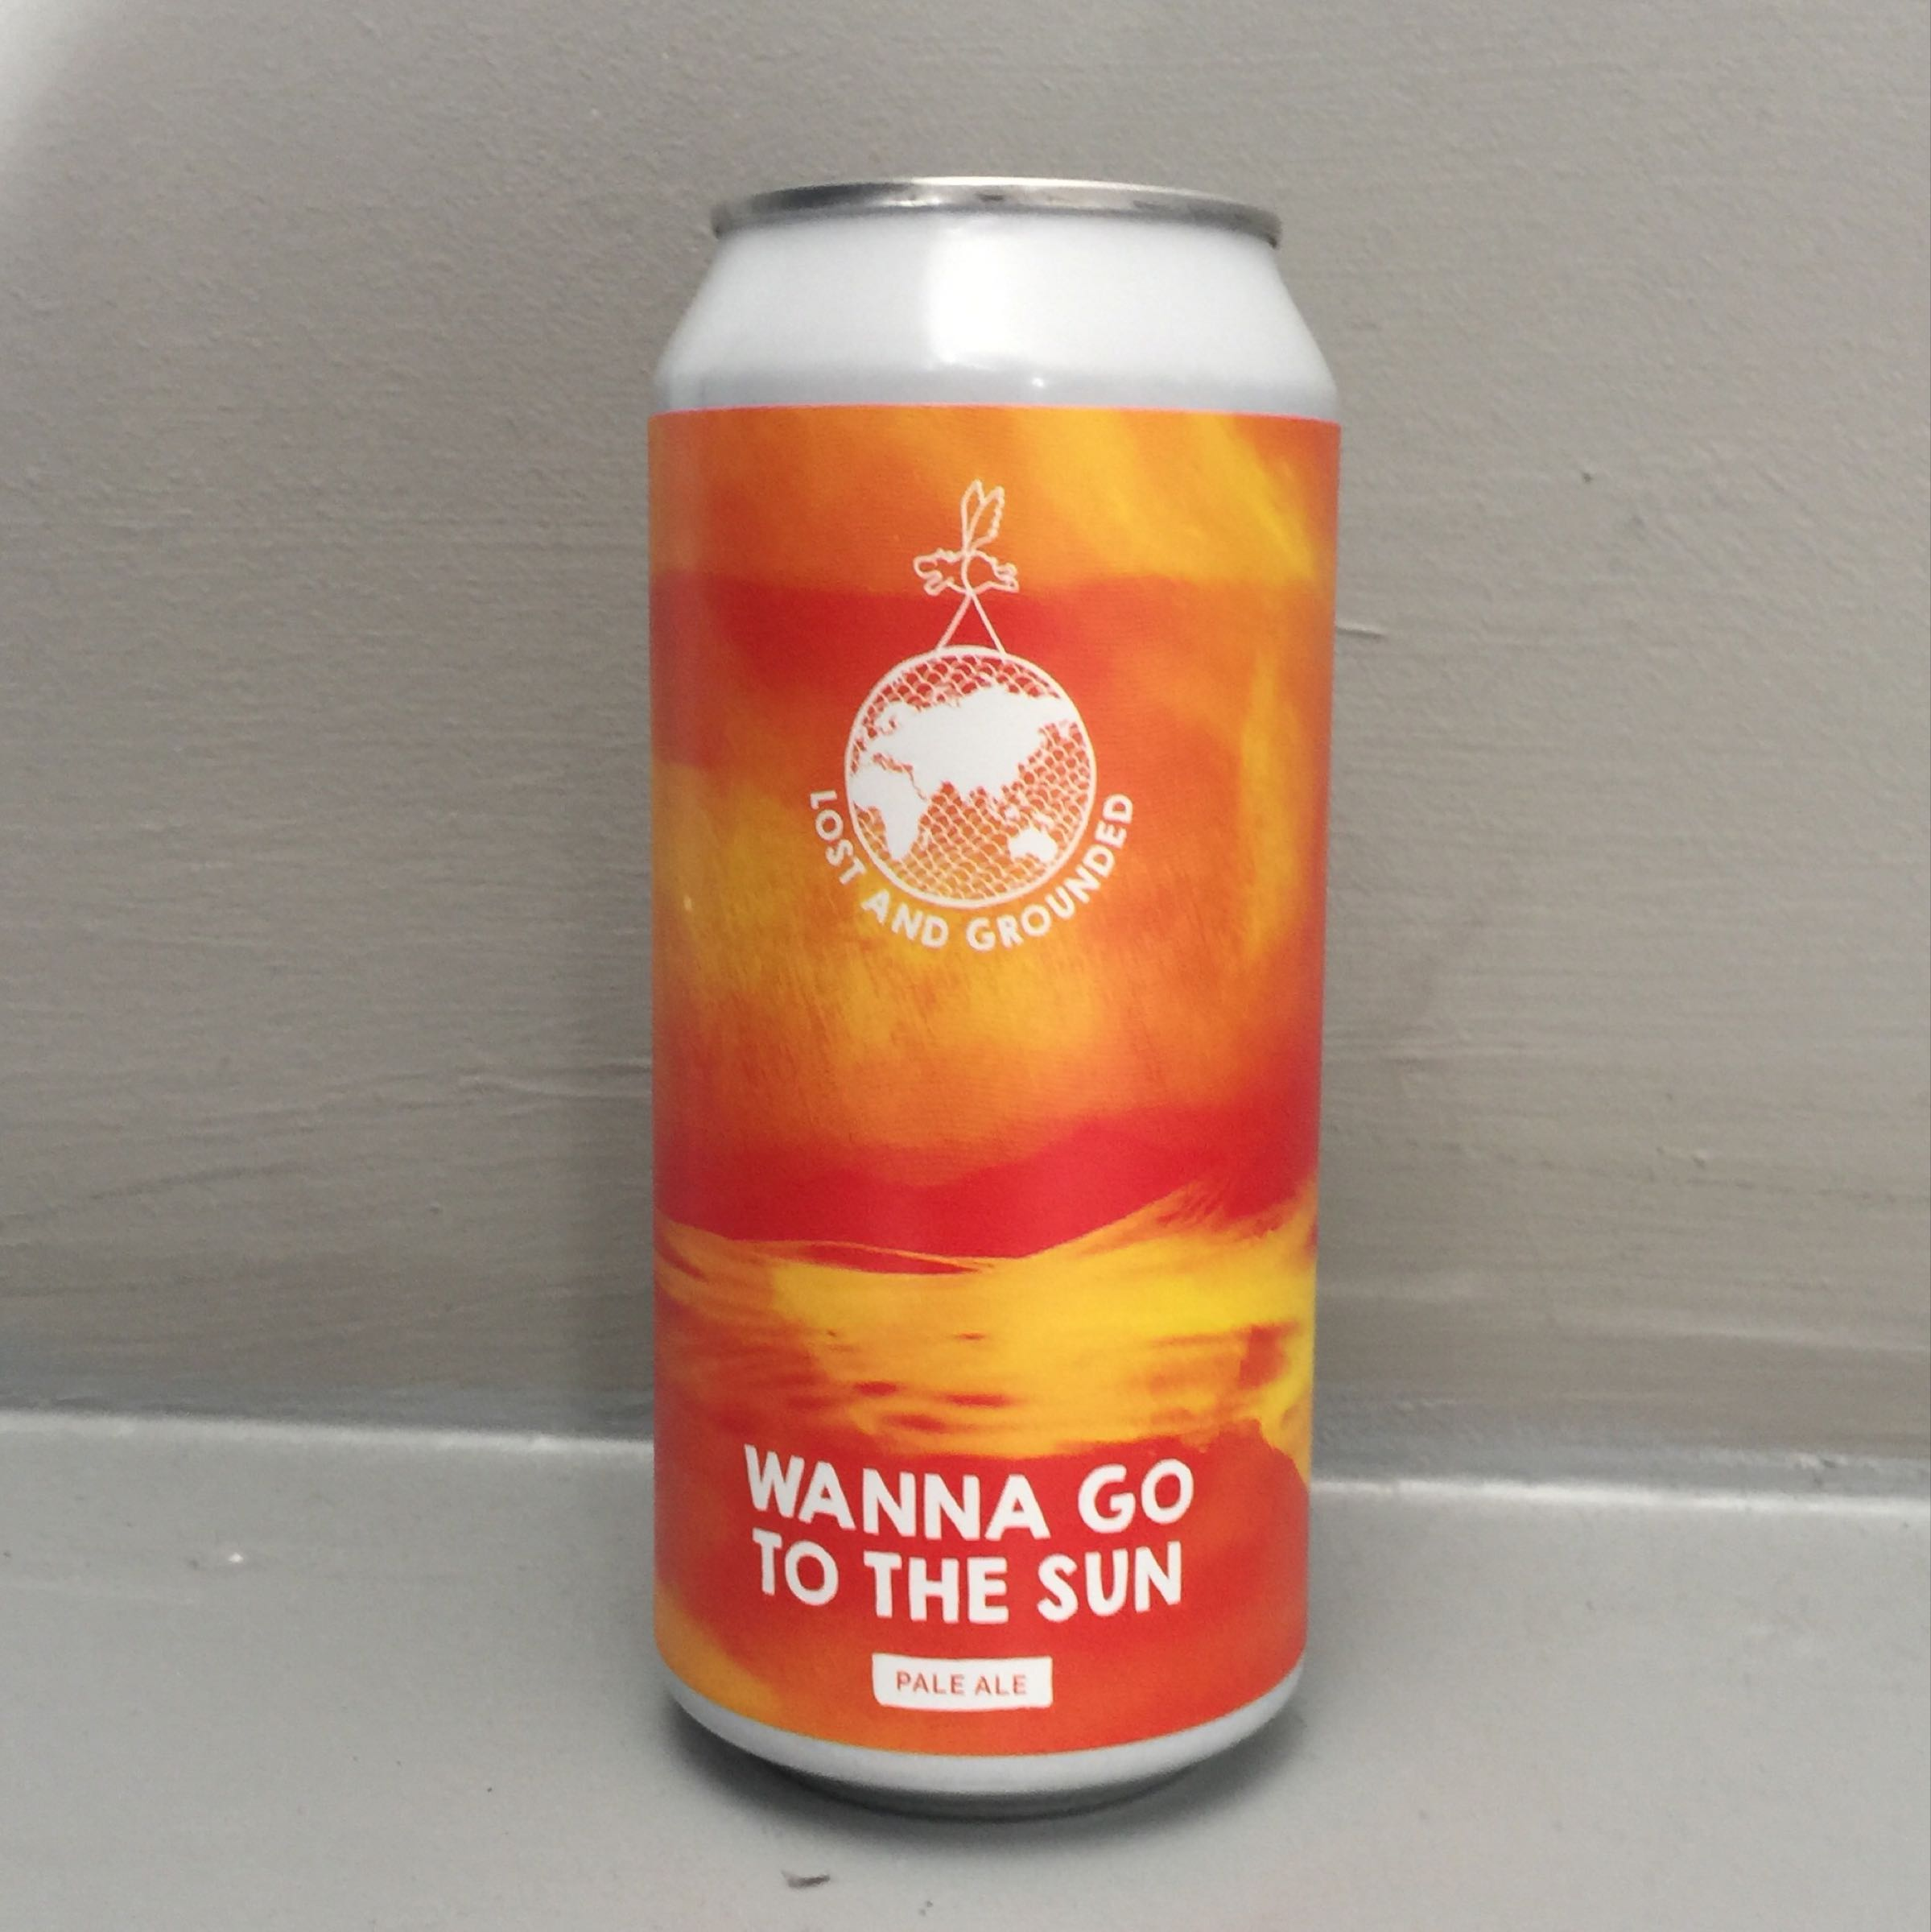 Lost and Grounded 'Wanna Go To The Sun' 440ml 4.6% ABV